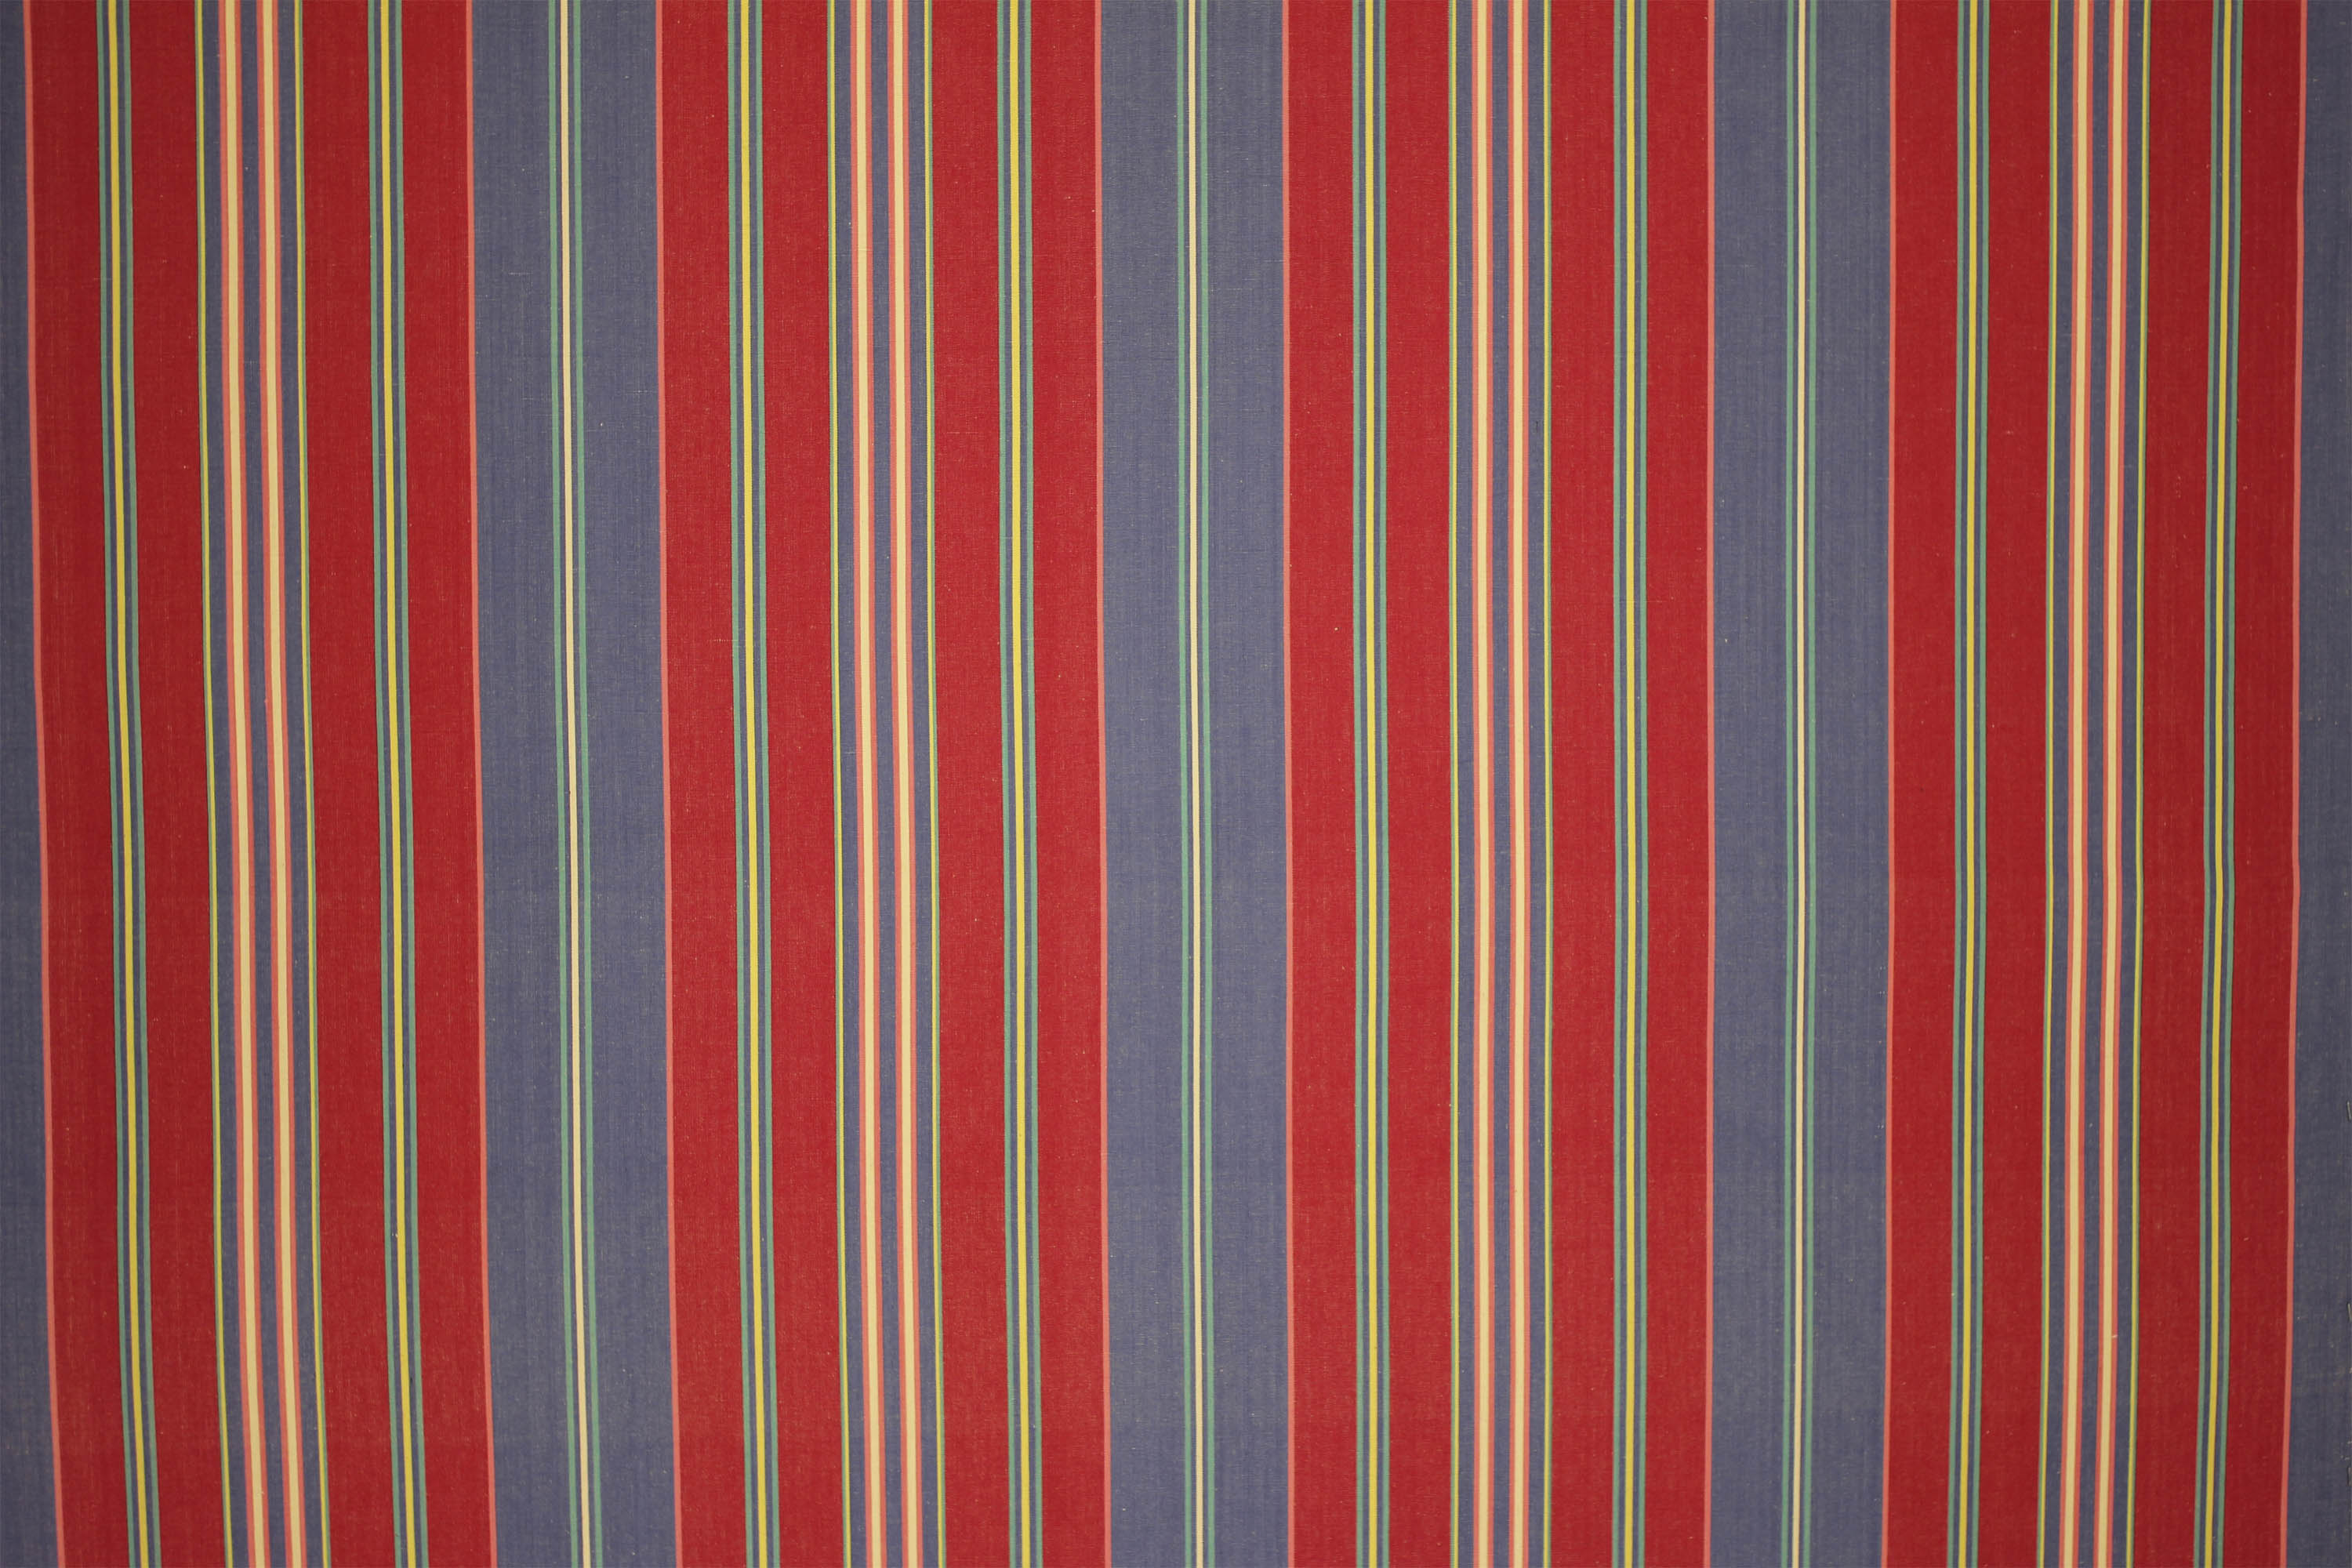 Red Striped Fabrics | Stripe Cotton Fabrics | Striped Curtain Fabrics | Upholstery Fabrics  Poker Stripes